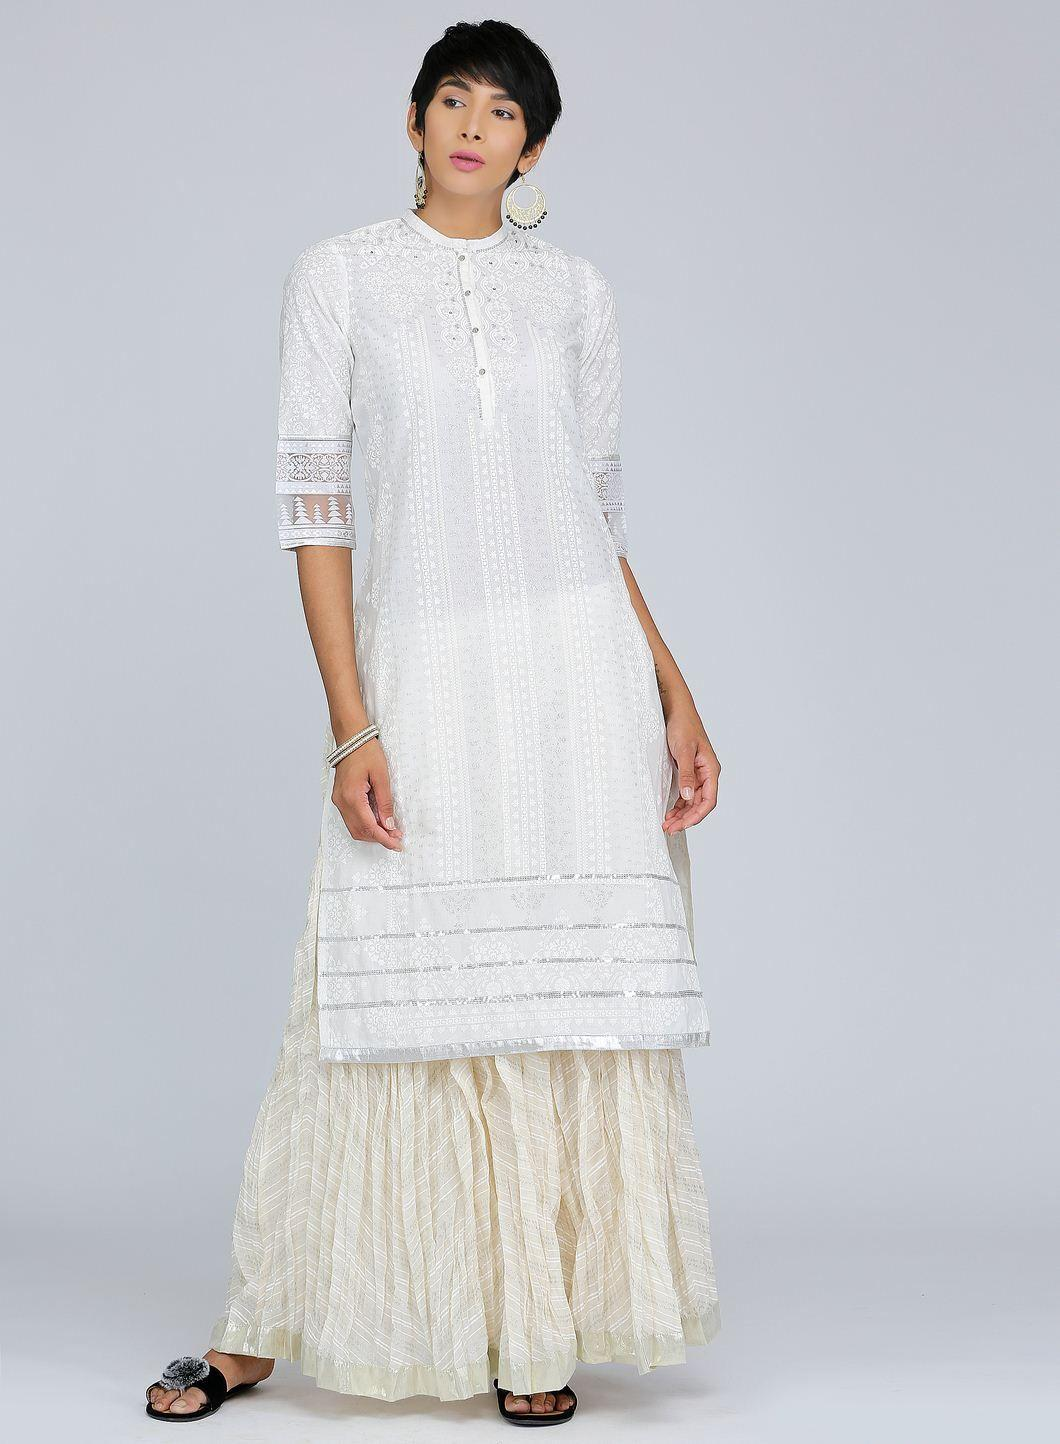 a497fca8fc Women s Clothing In Nepal At Best Price - Daraz.com.np